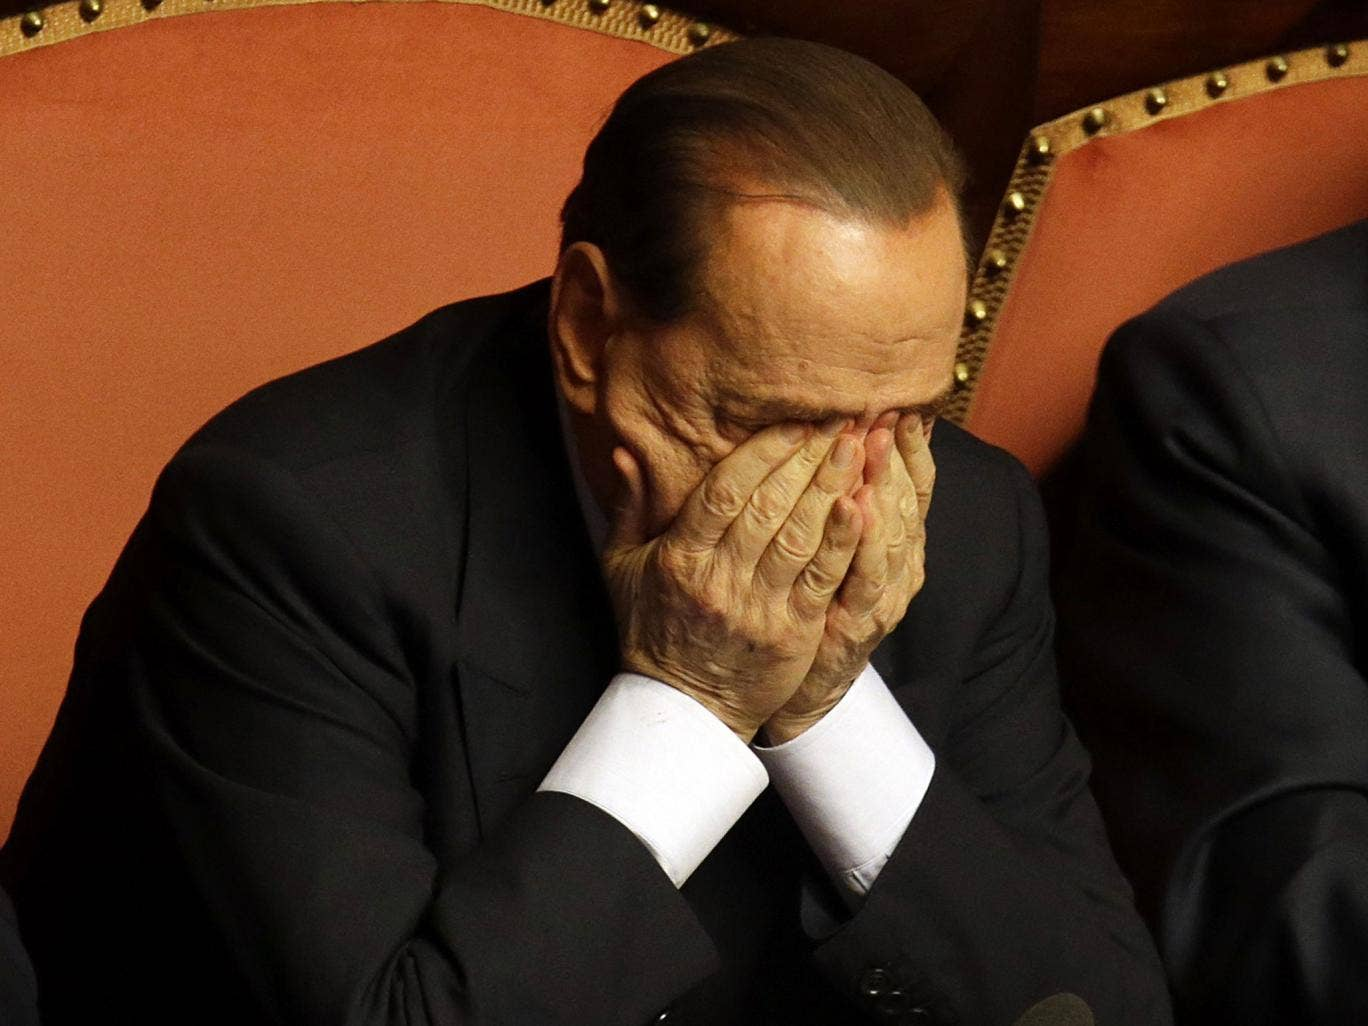 The Senate committee has recommended Berlusconi be expelled from parliament